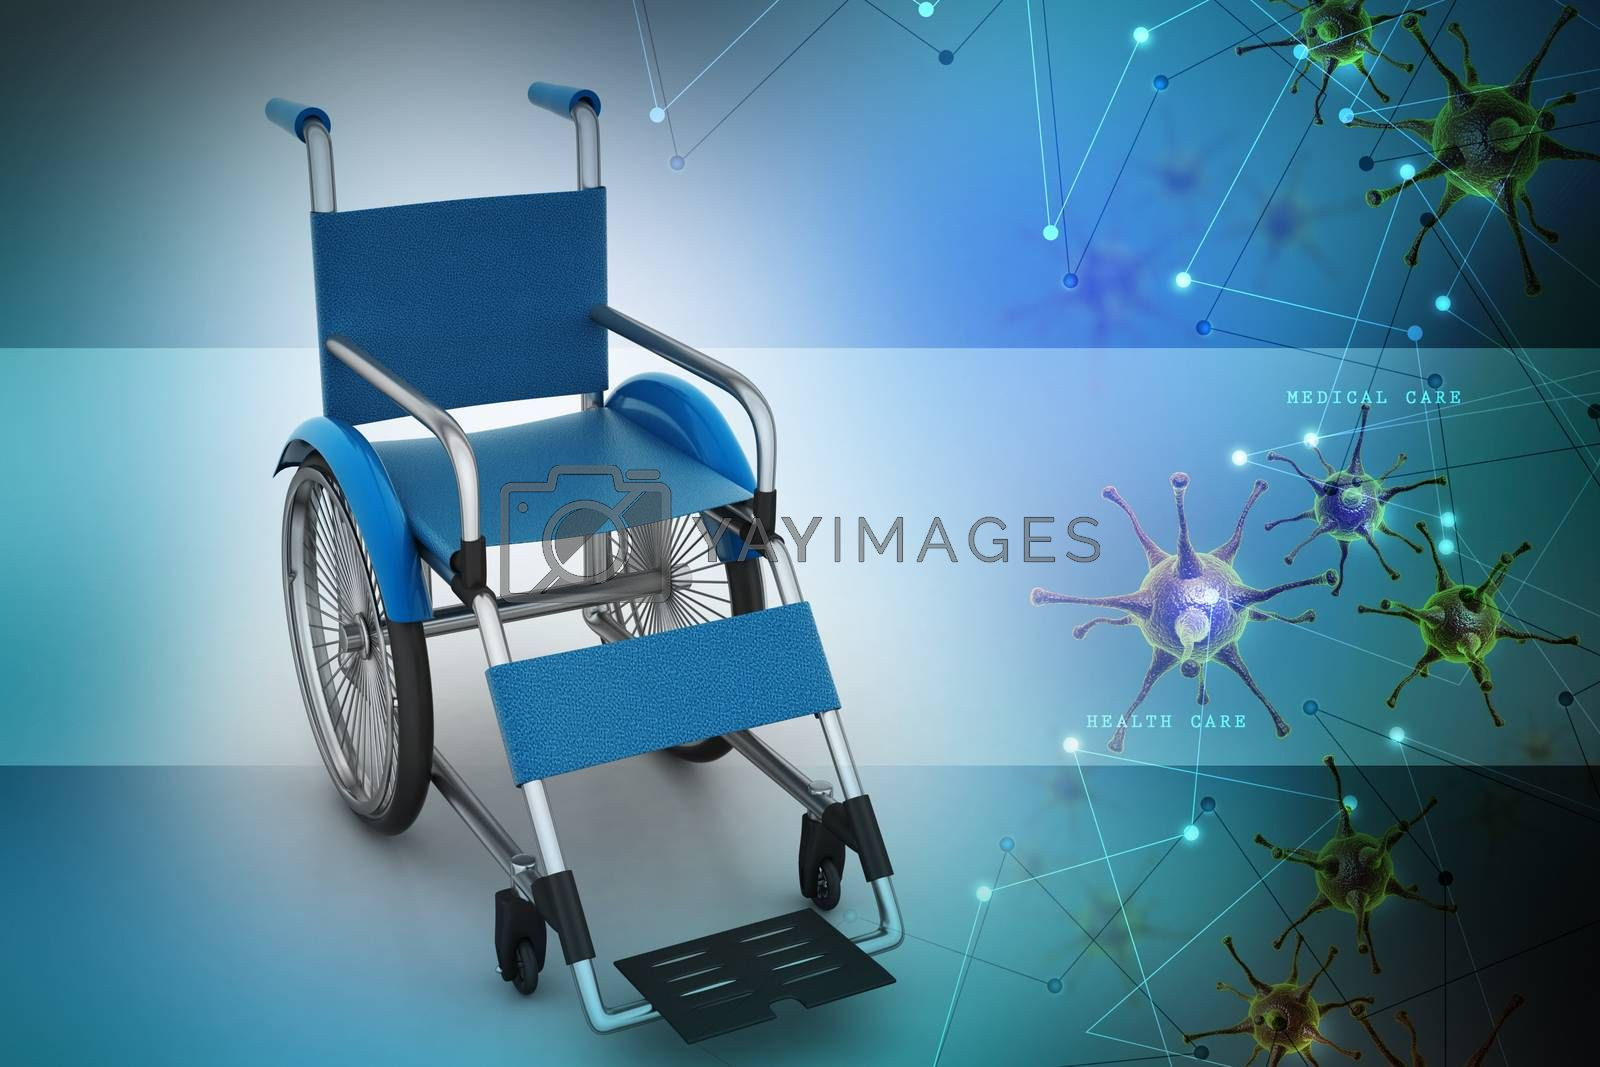 Medical wheel chair with virus  in color background by cuteimage